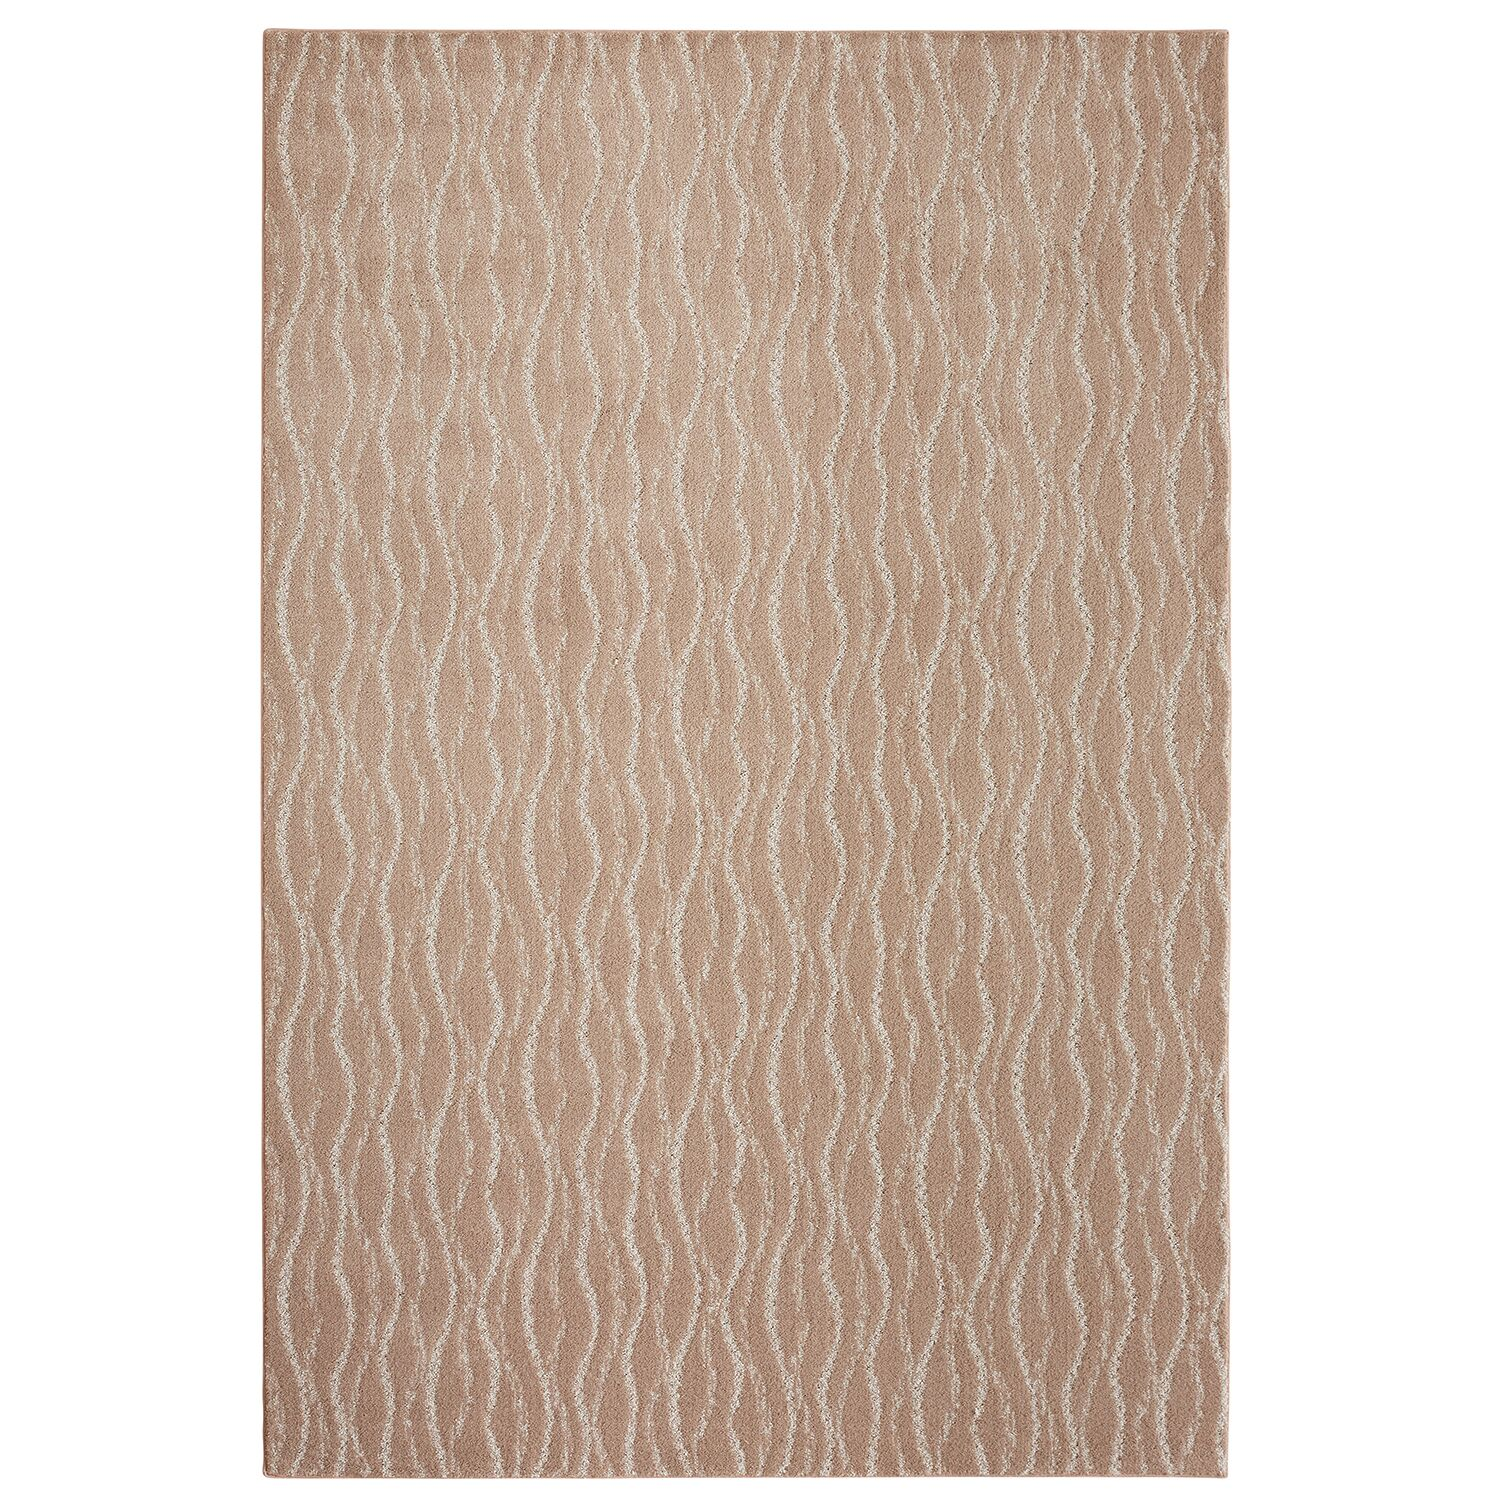 Bettie Hand-Tufted Brown Area Rug Rug Size: Rectangle 9' x 12'